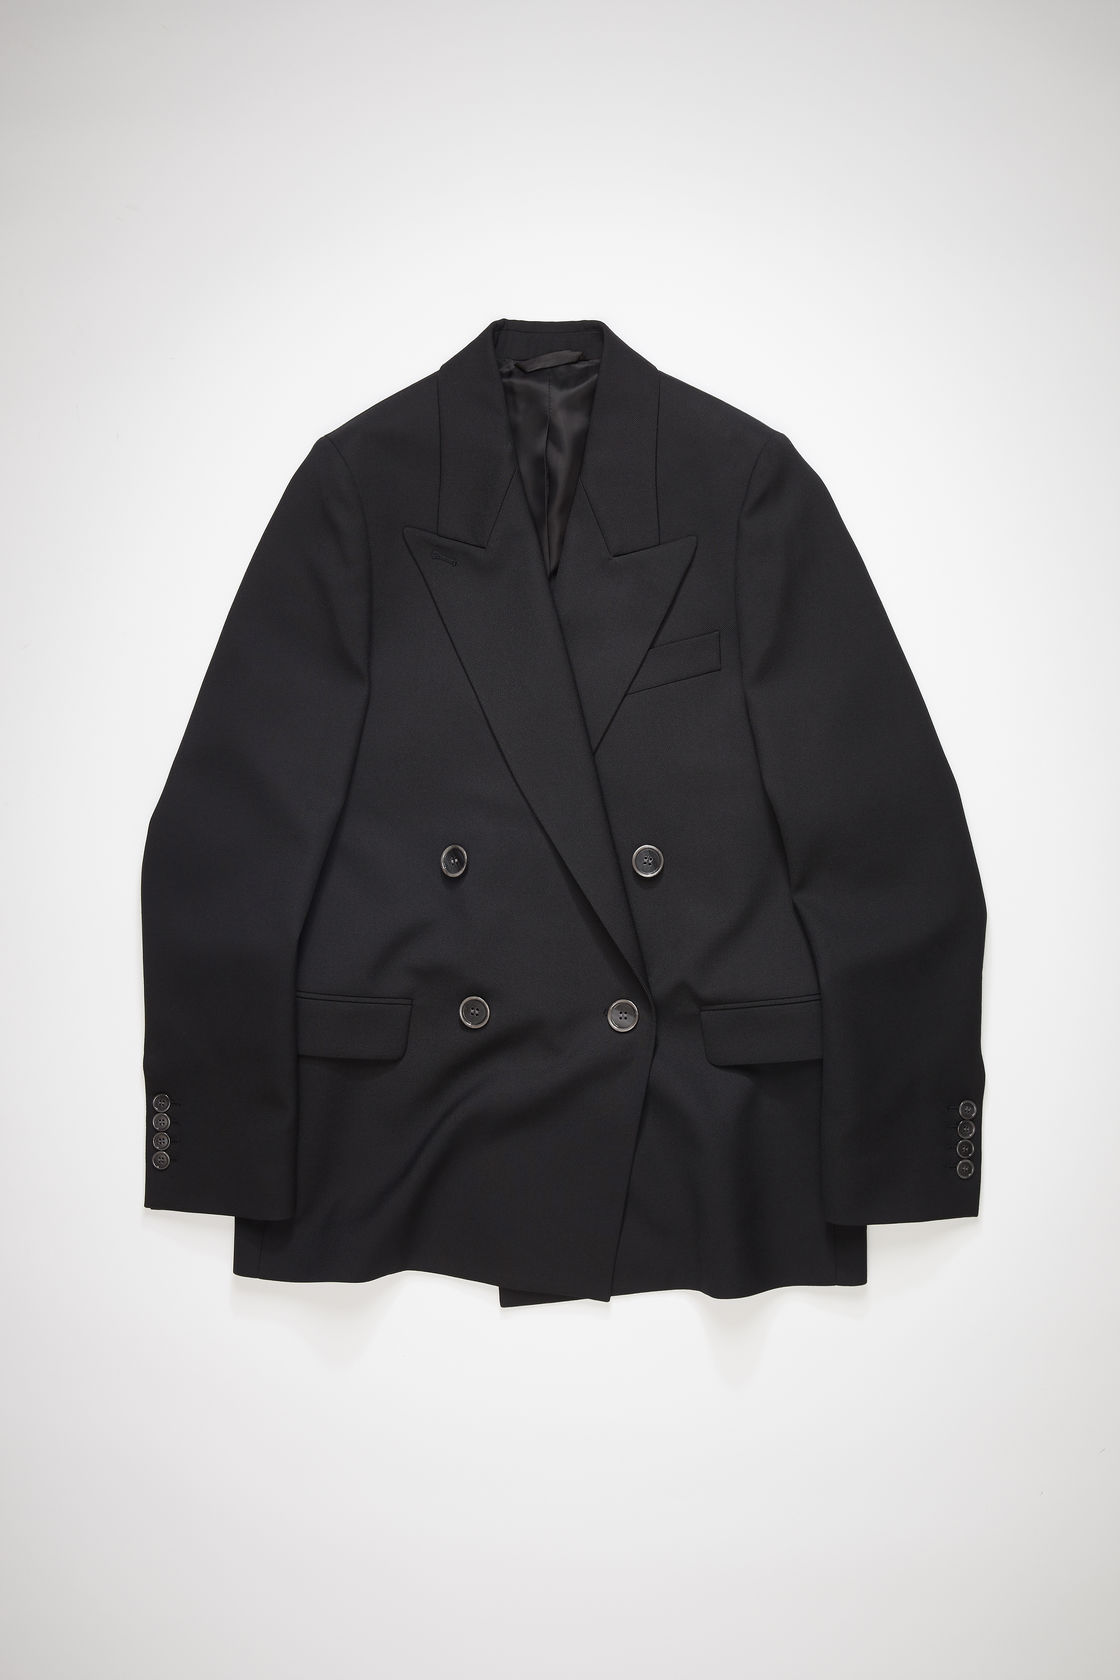 FN-WN-SUIT000222